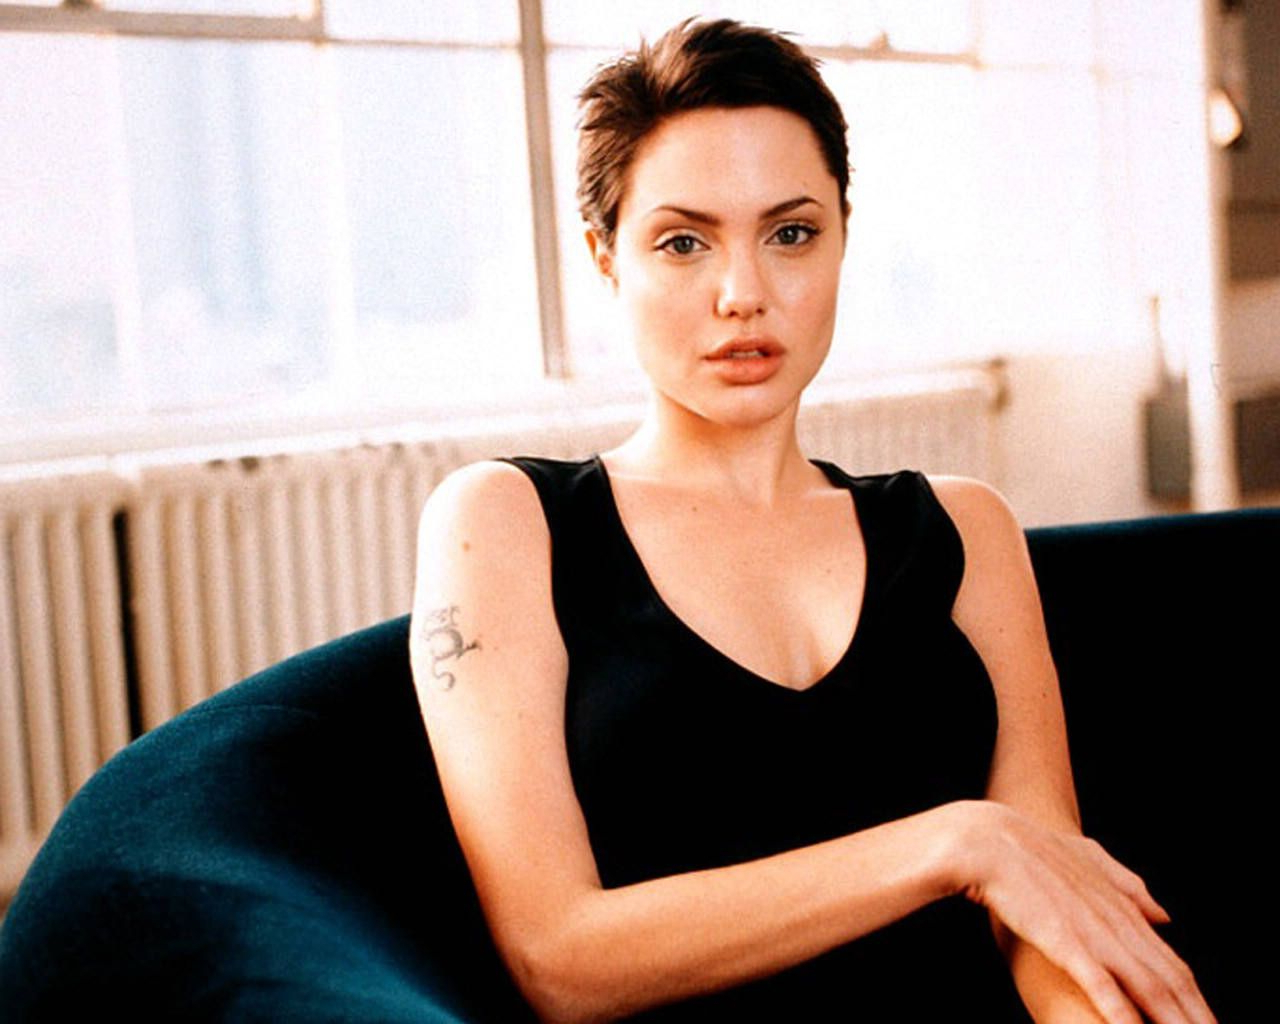 Angelina Jolie Short Hair After Gia. | Hairstyles | Pinterest Regarding Angelina Jolie Short Hairstyles (Gallery 1 of 25)